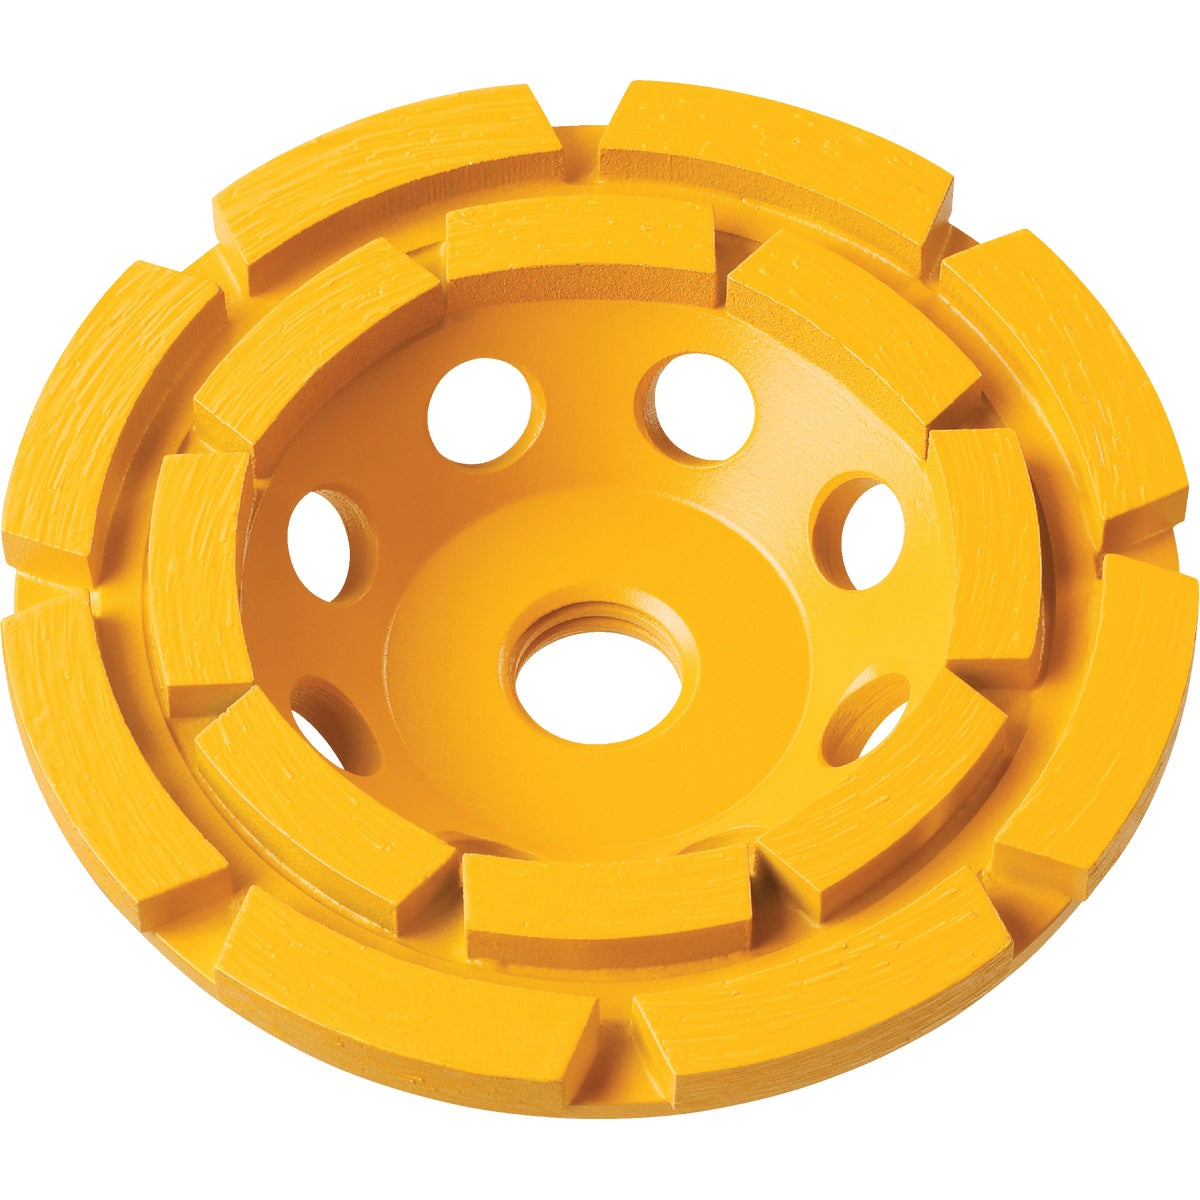 "4"" MSNRY FLARE CUP WHEEL - DW4772 by DeWalt"